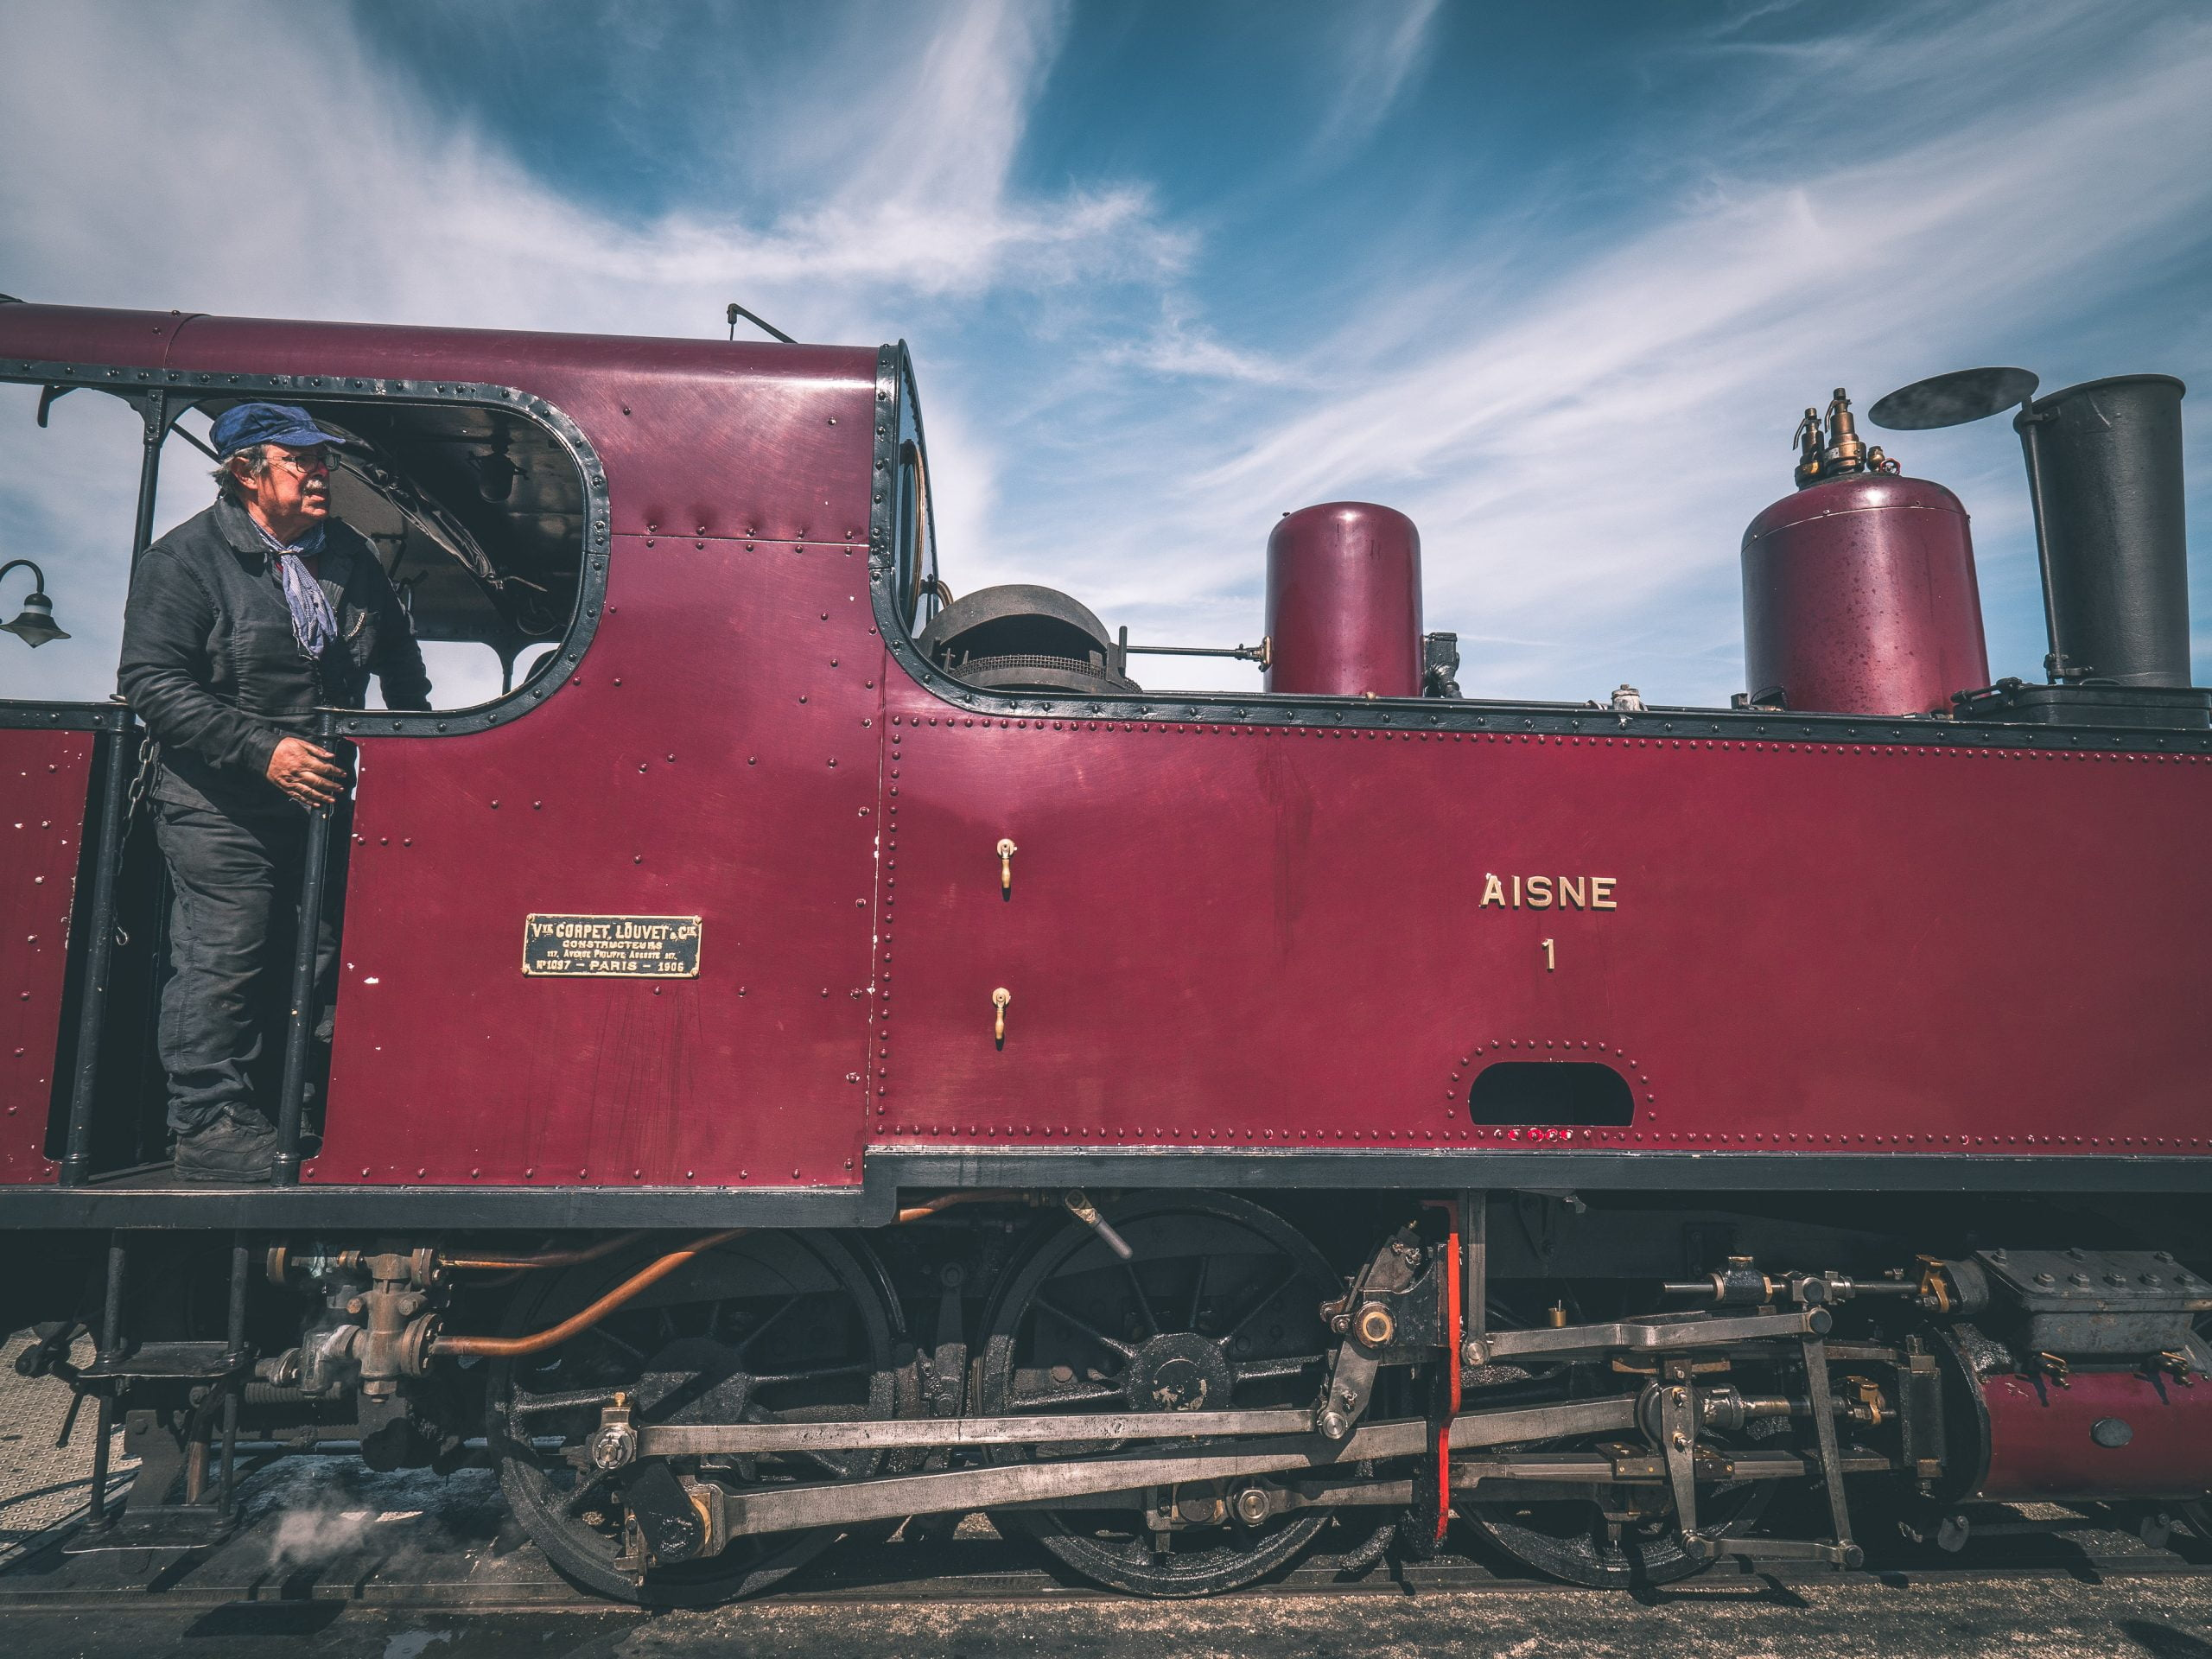 somme train cheminot scaled - Les globe blogueurs - blog voyage nature